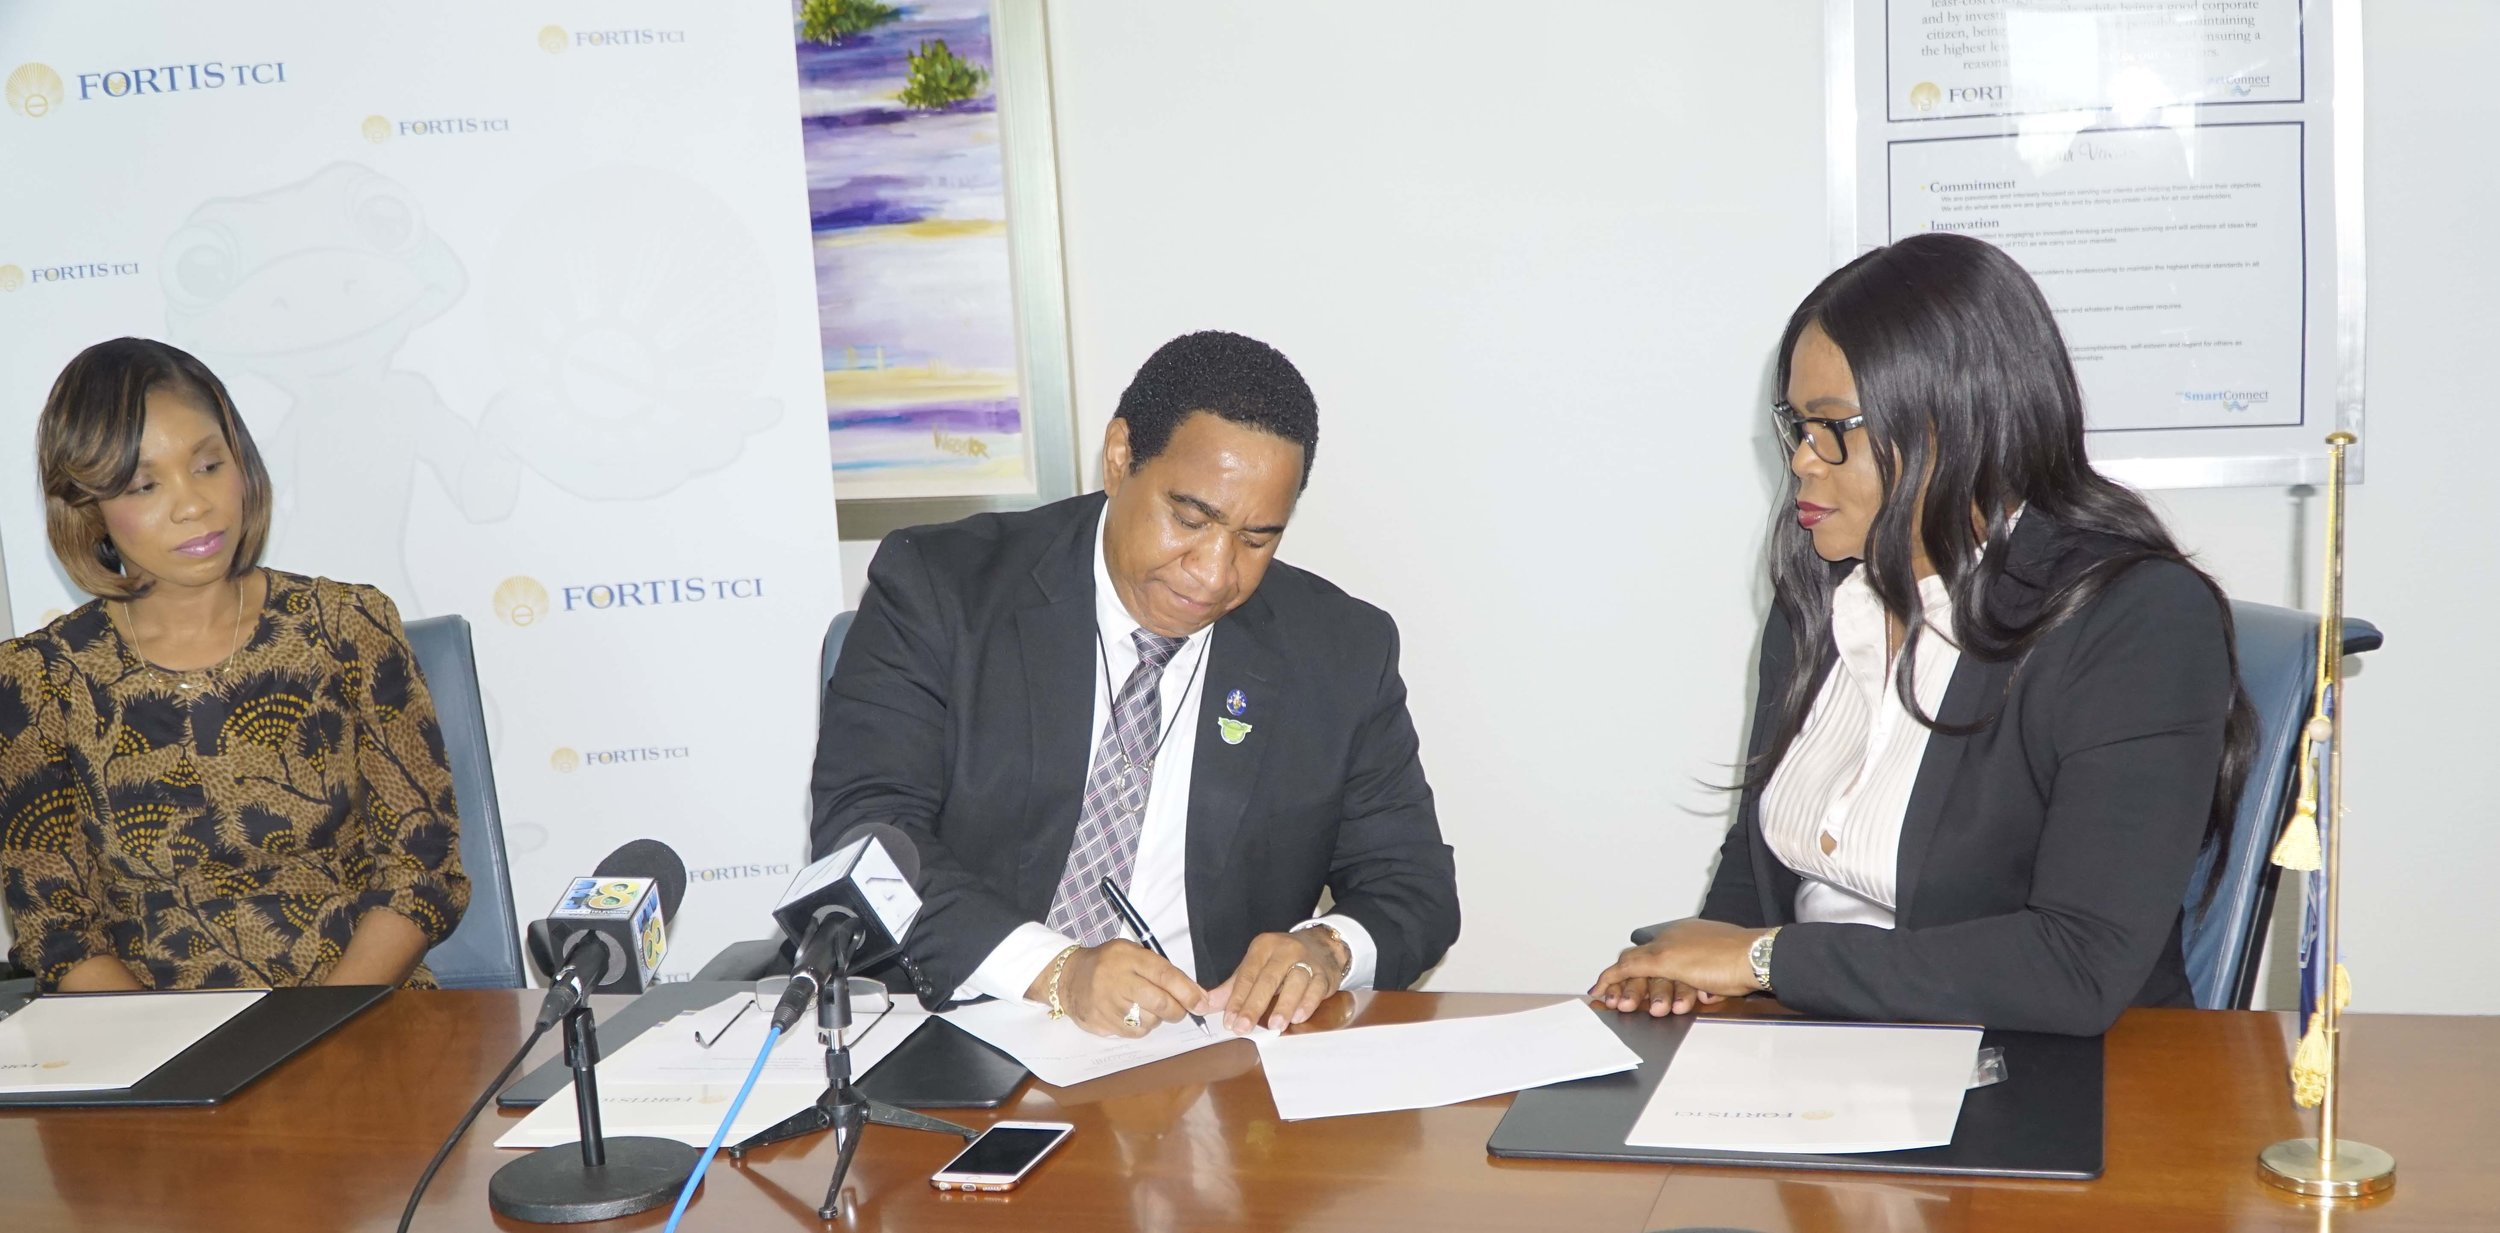 Signing of the contract by Fortis TCI President Eddinton Powell, and TCIFA President Sonia Bien-Aime, February 6, 2017